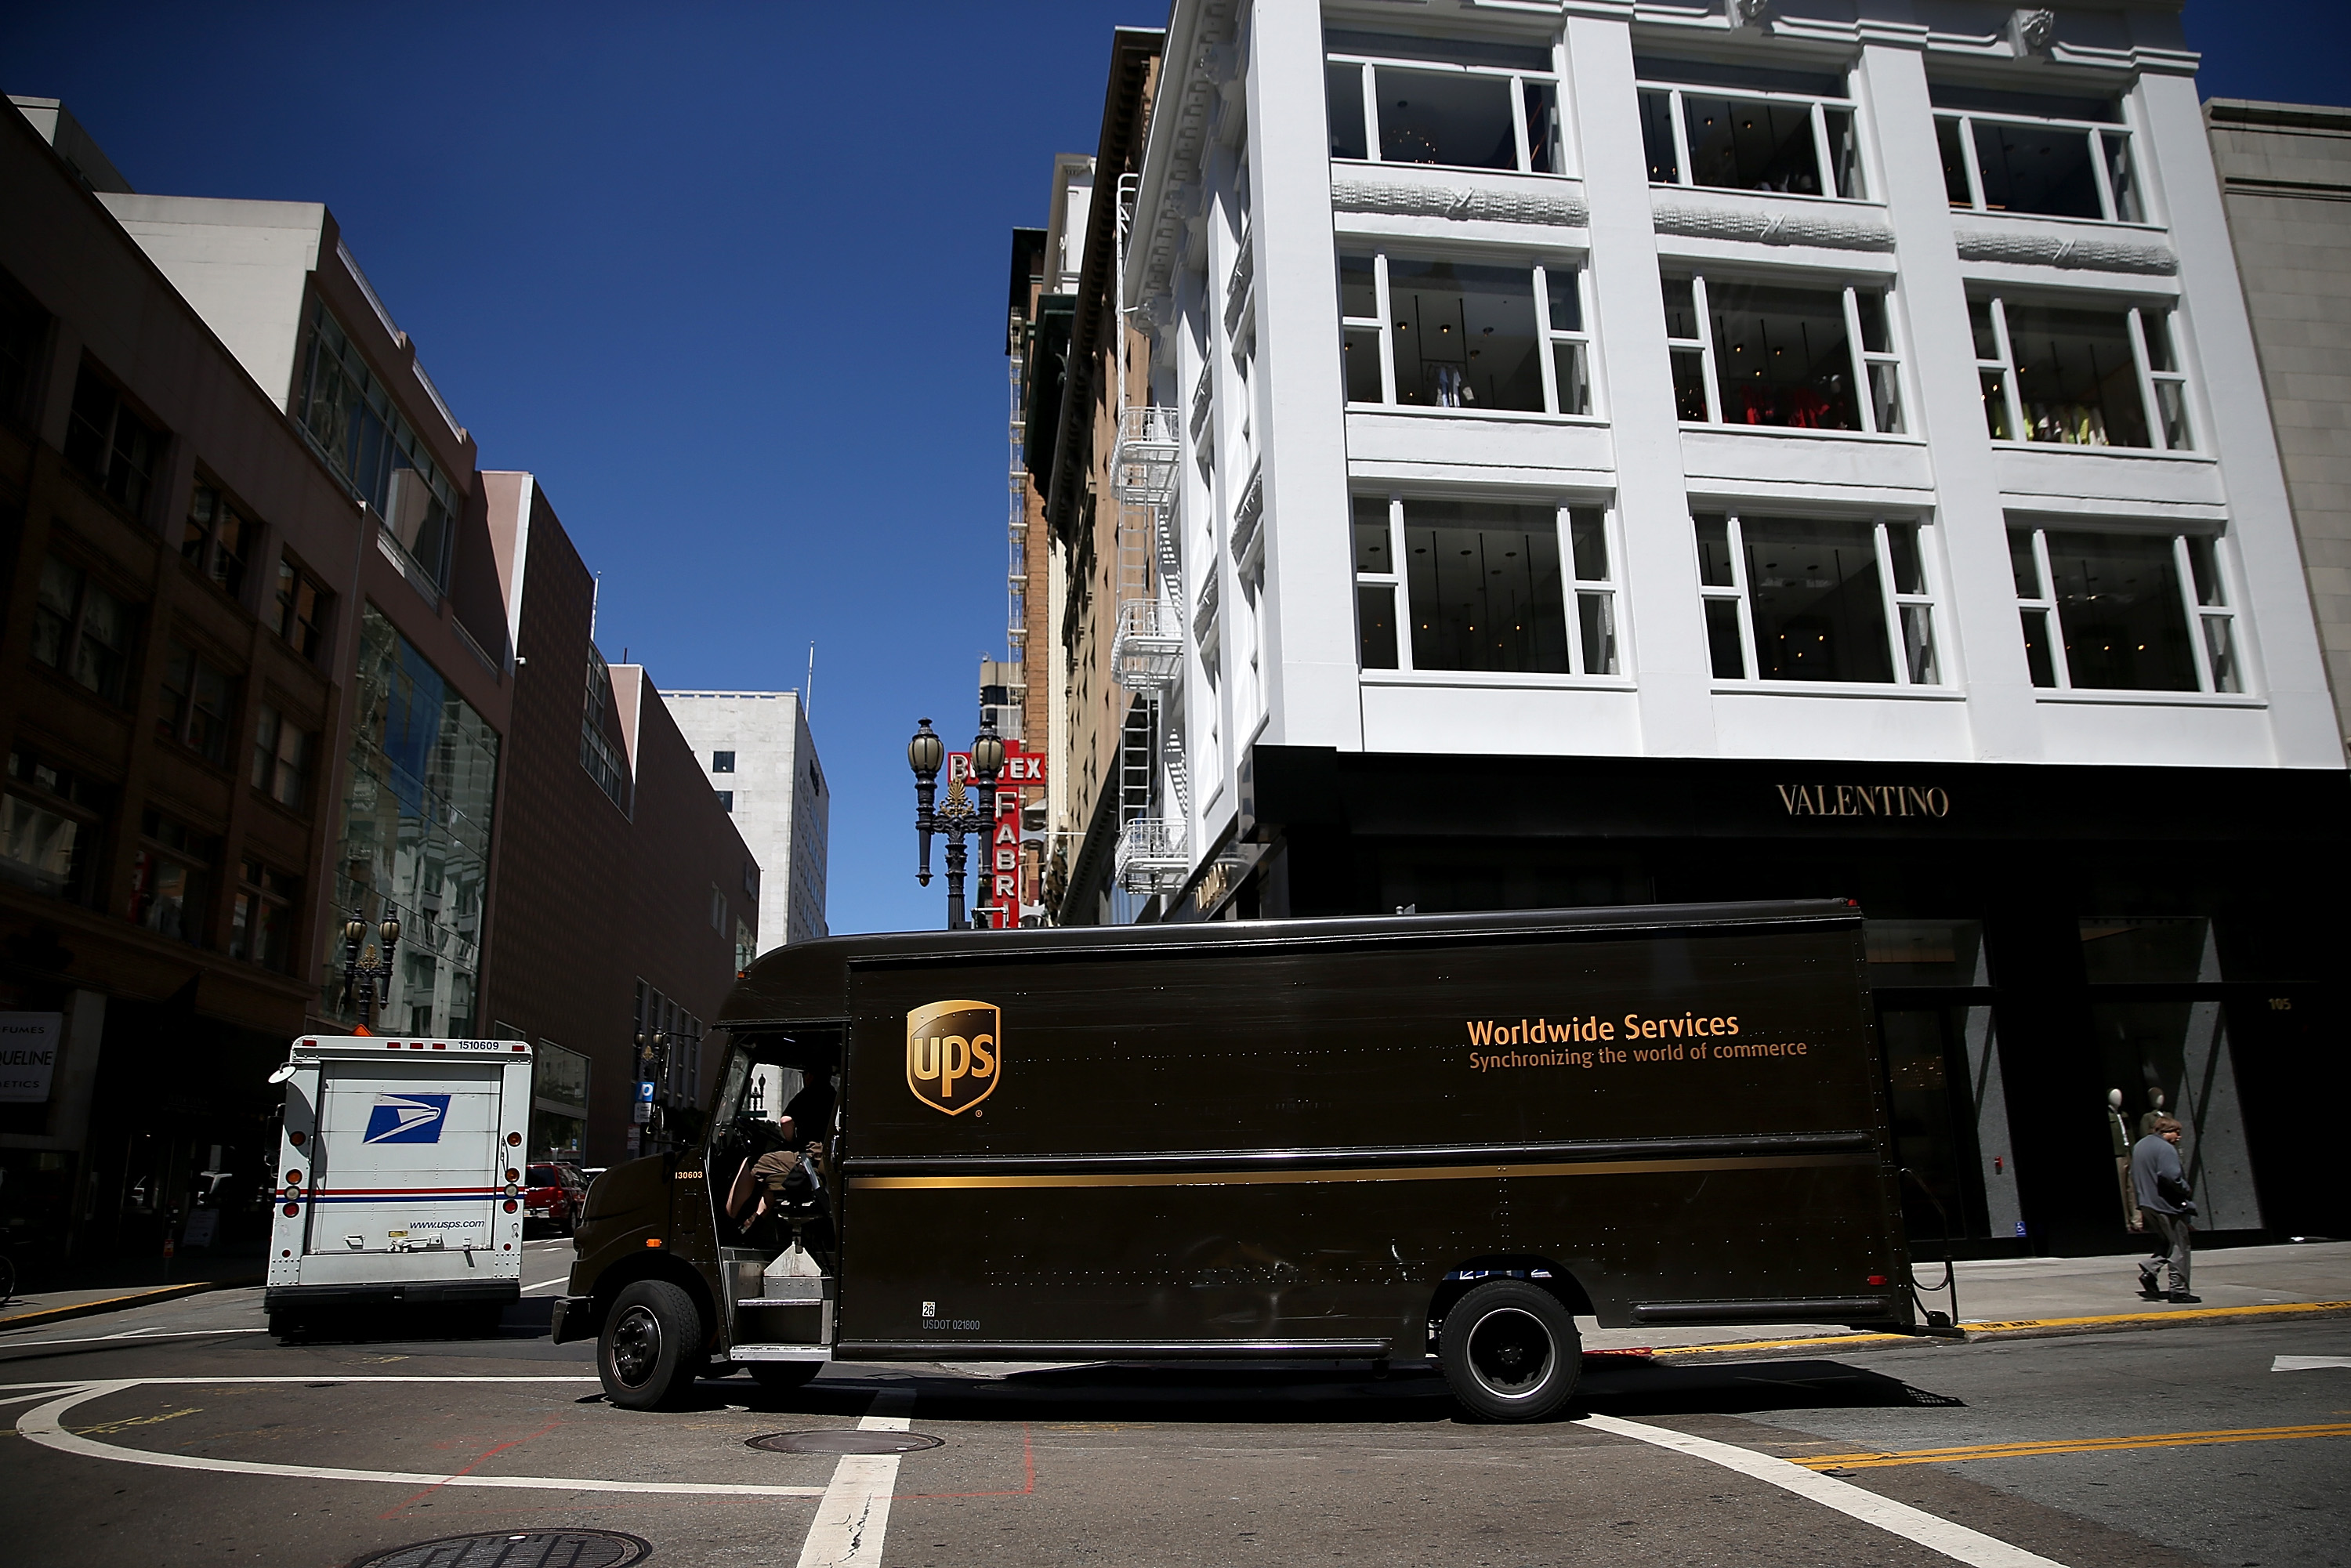 SAN FRANCISCO, CA - JUNE 17:  A United Parcel Service (UPS) drives through an intersection on June 17, 2014 in San Francisco, California.